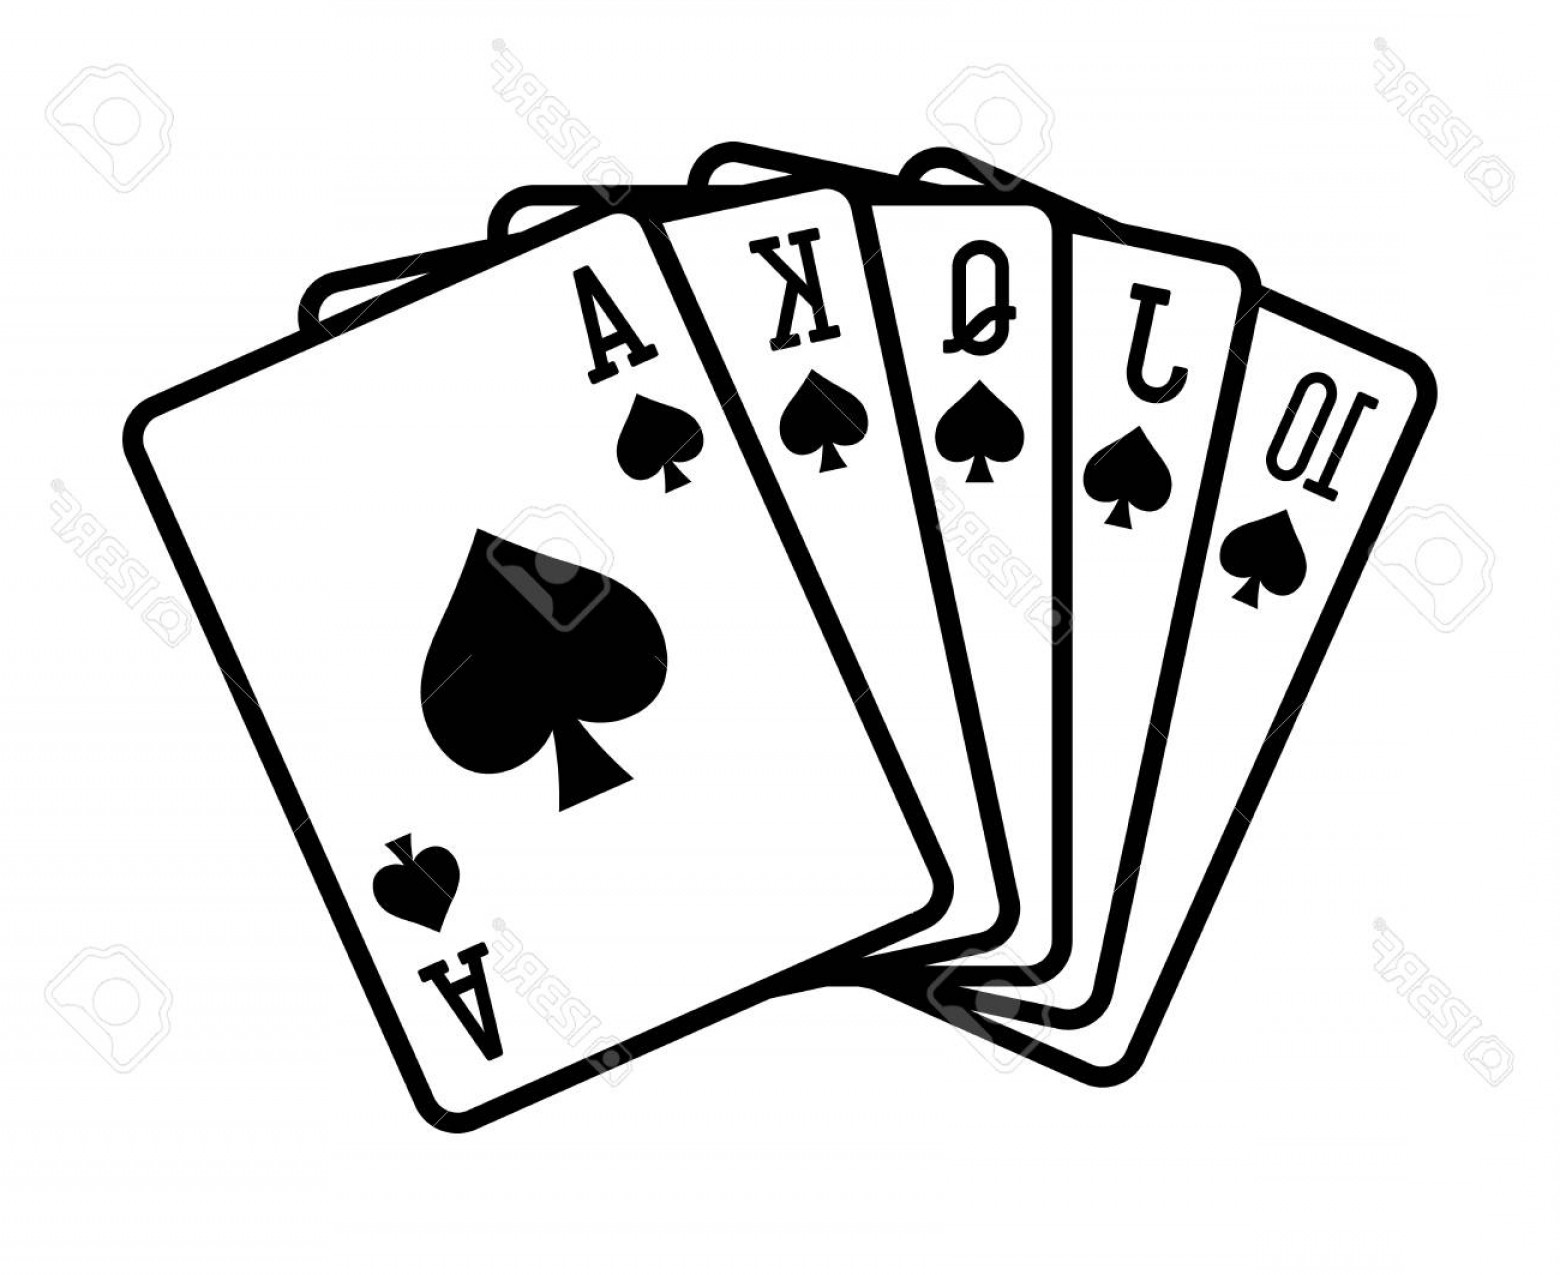 Poker Hand Vector: Photostock Vector Spade Royal Straight Flush Poker Hand Flat Vector Icon For Casino Apps And Websites